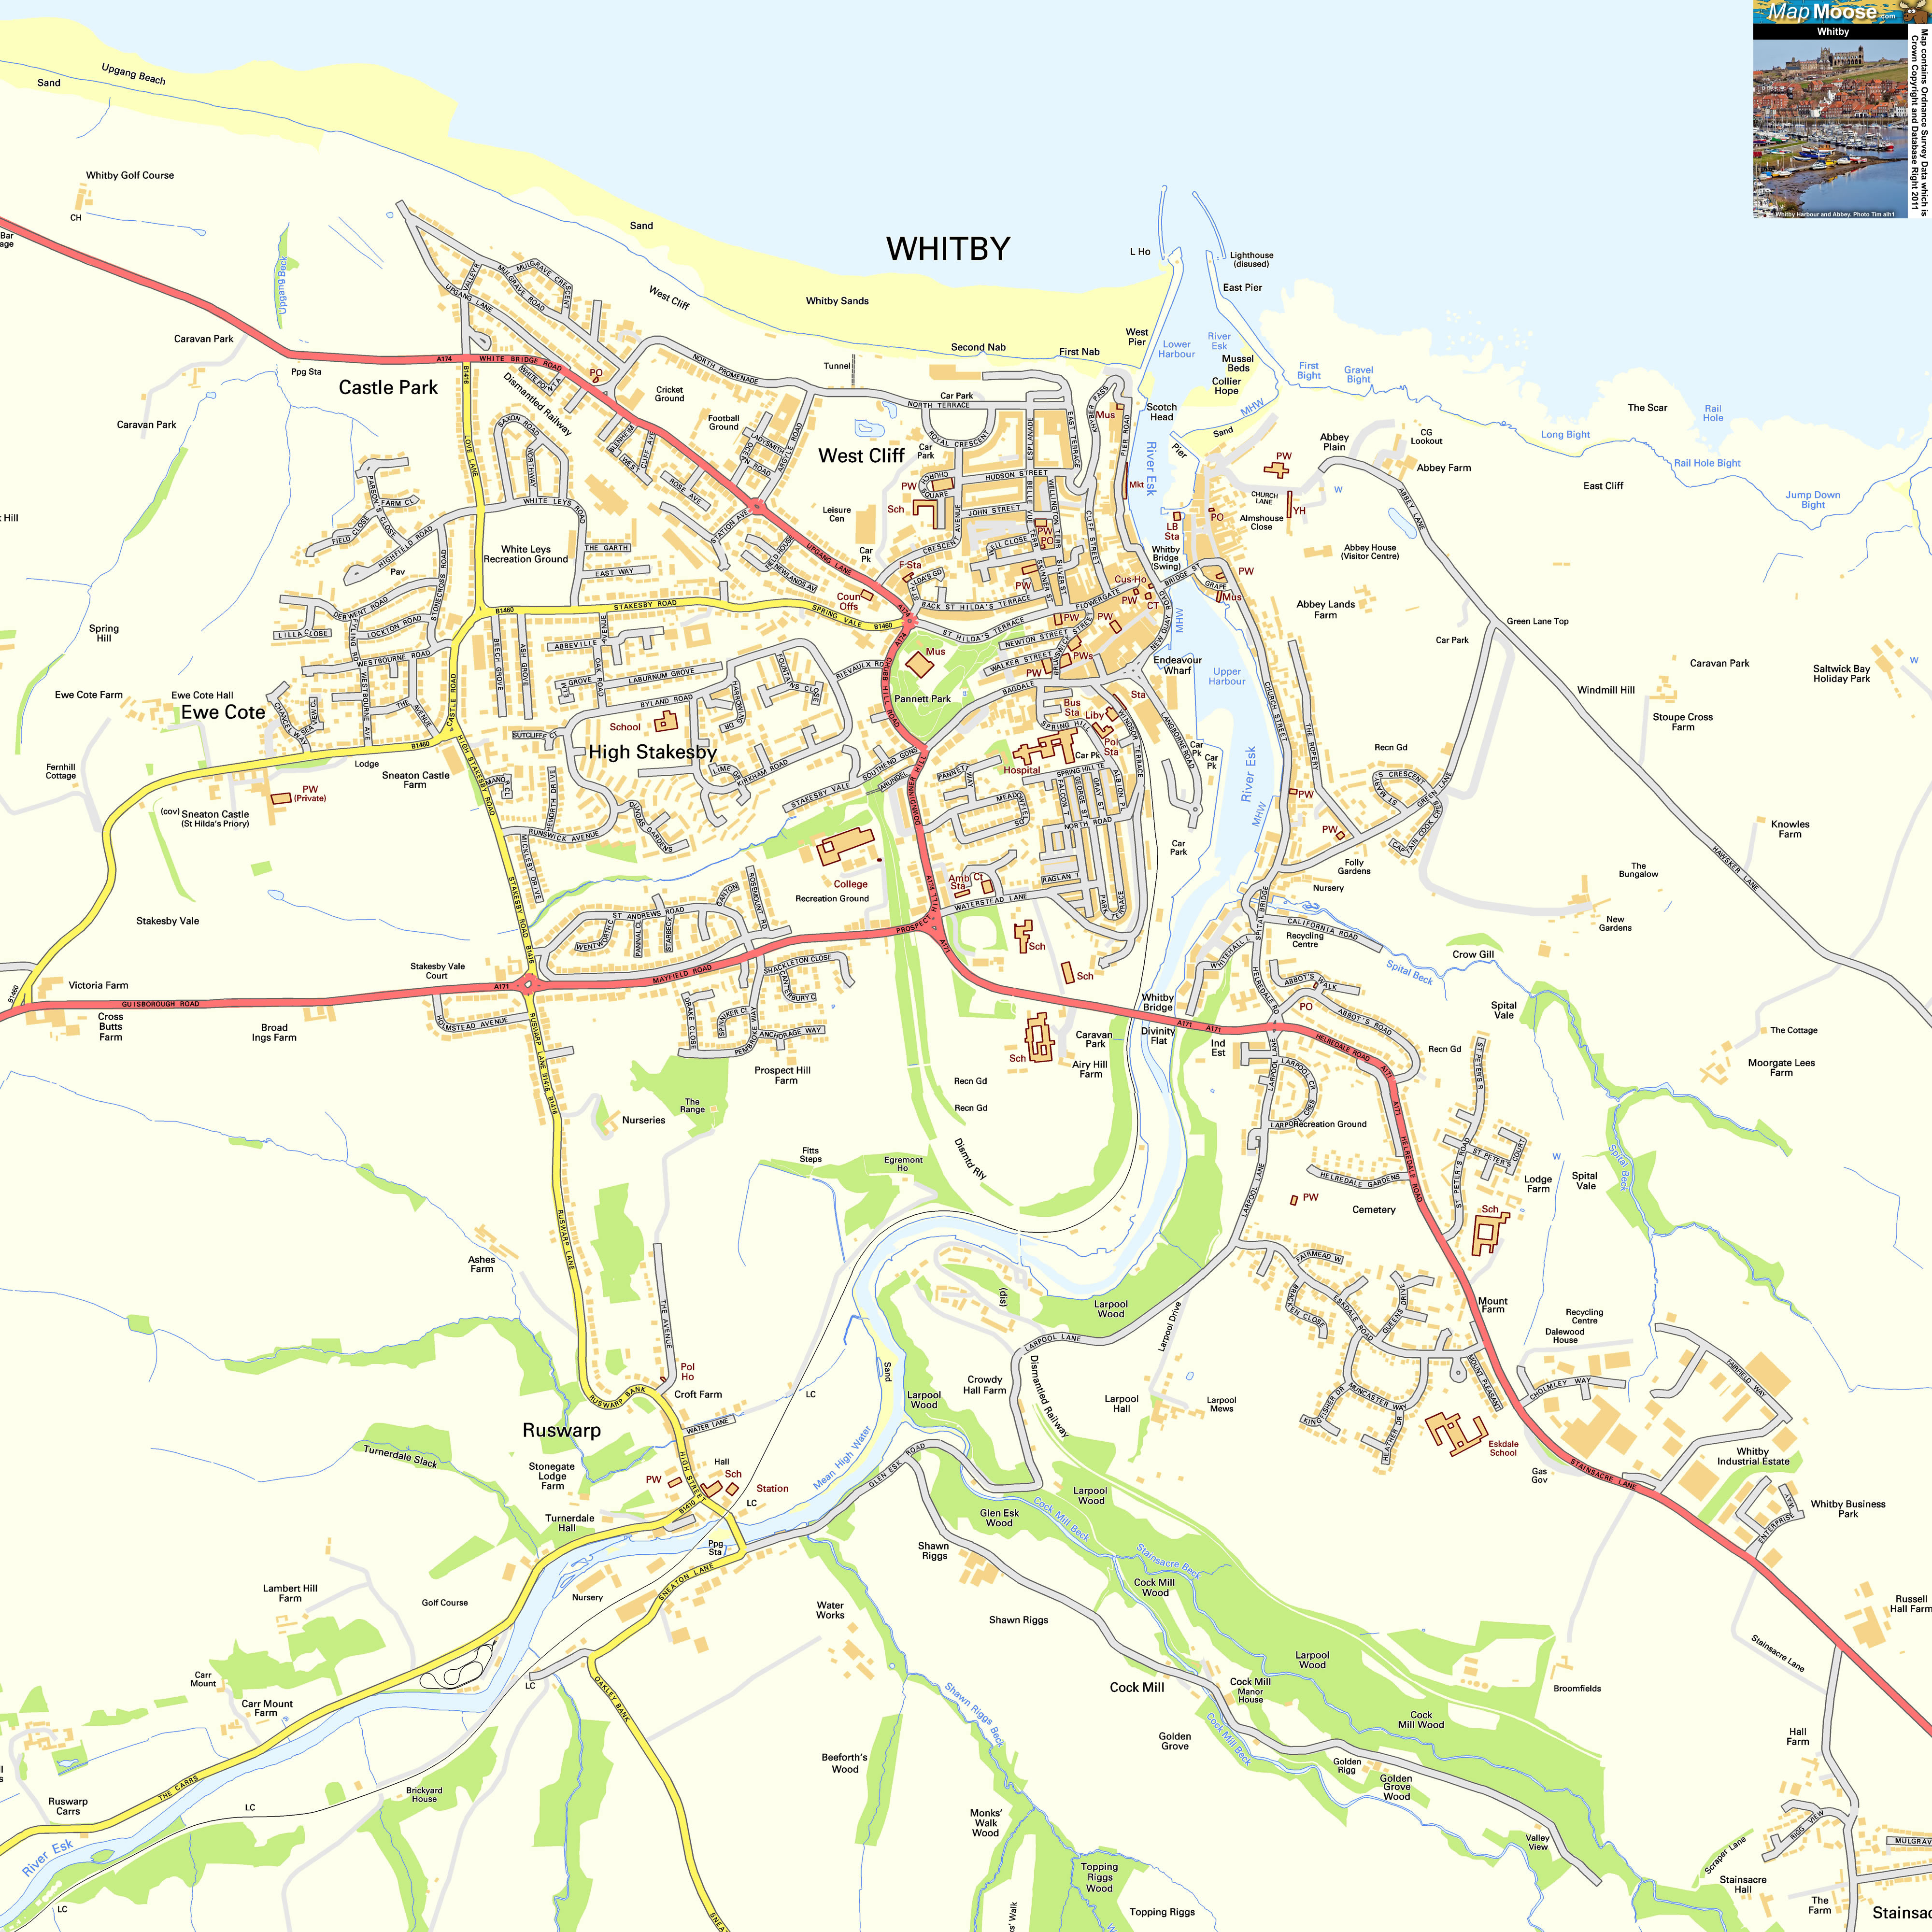 Whitby Offline Street Map including Whitby Abbey Harbour River